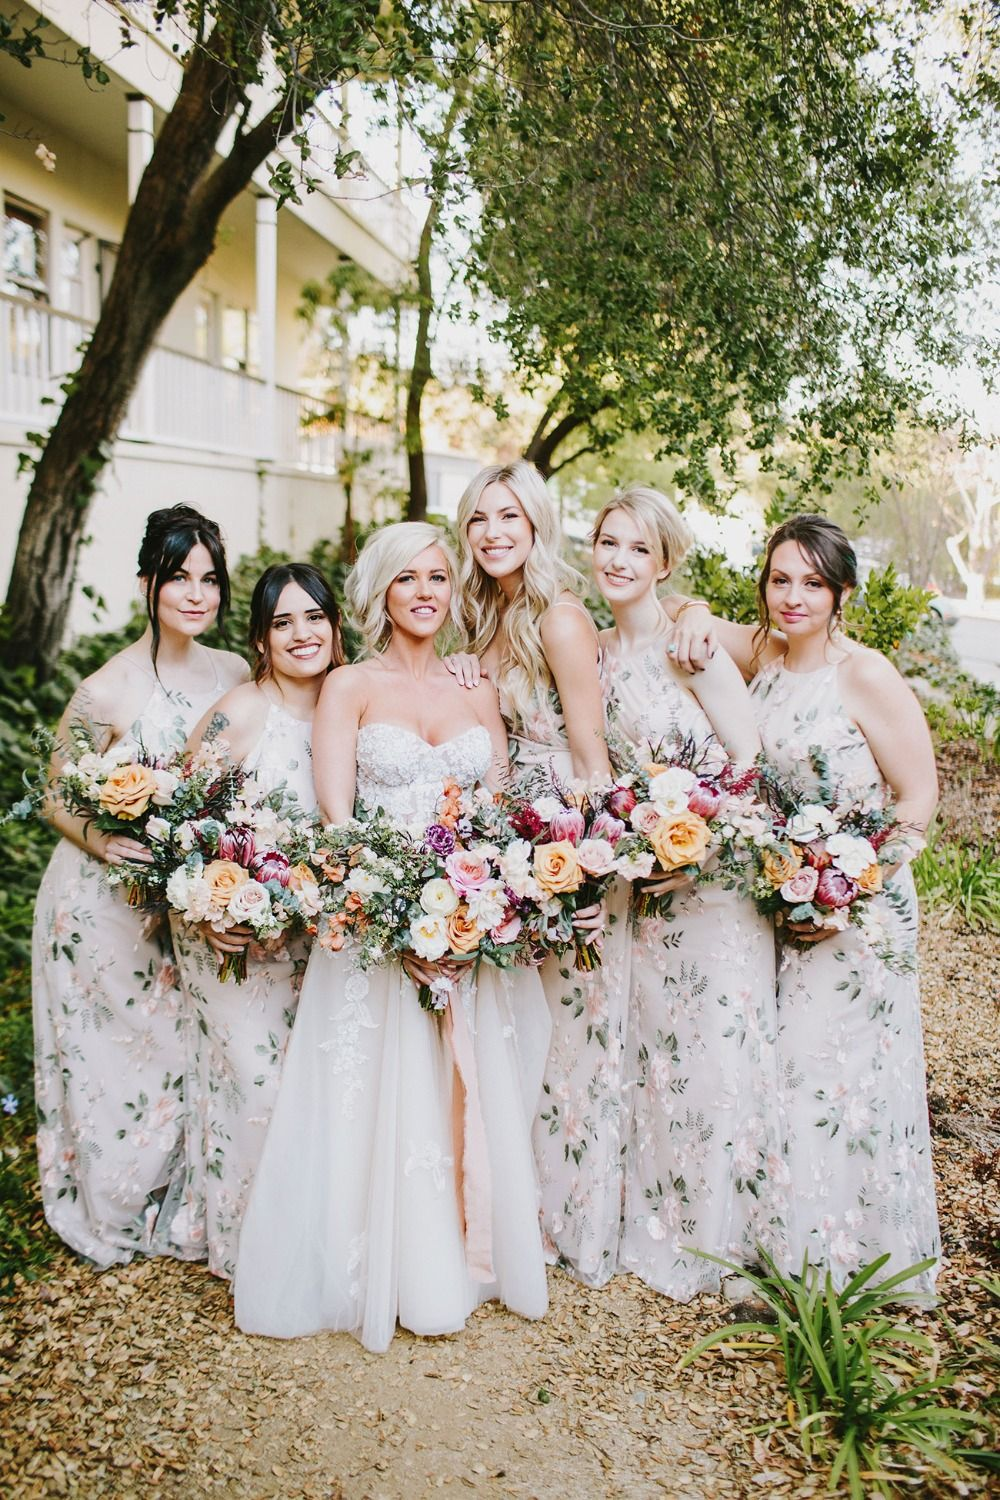 2fbe8d217f8d bridesmaids in floral Jenny Yoo dresses #weddingplanning  #weddinginspiration #bohowedding #floralwedding #weddingideas #weddingday  #bridesmaids